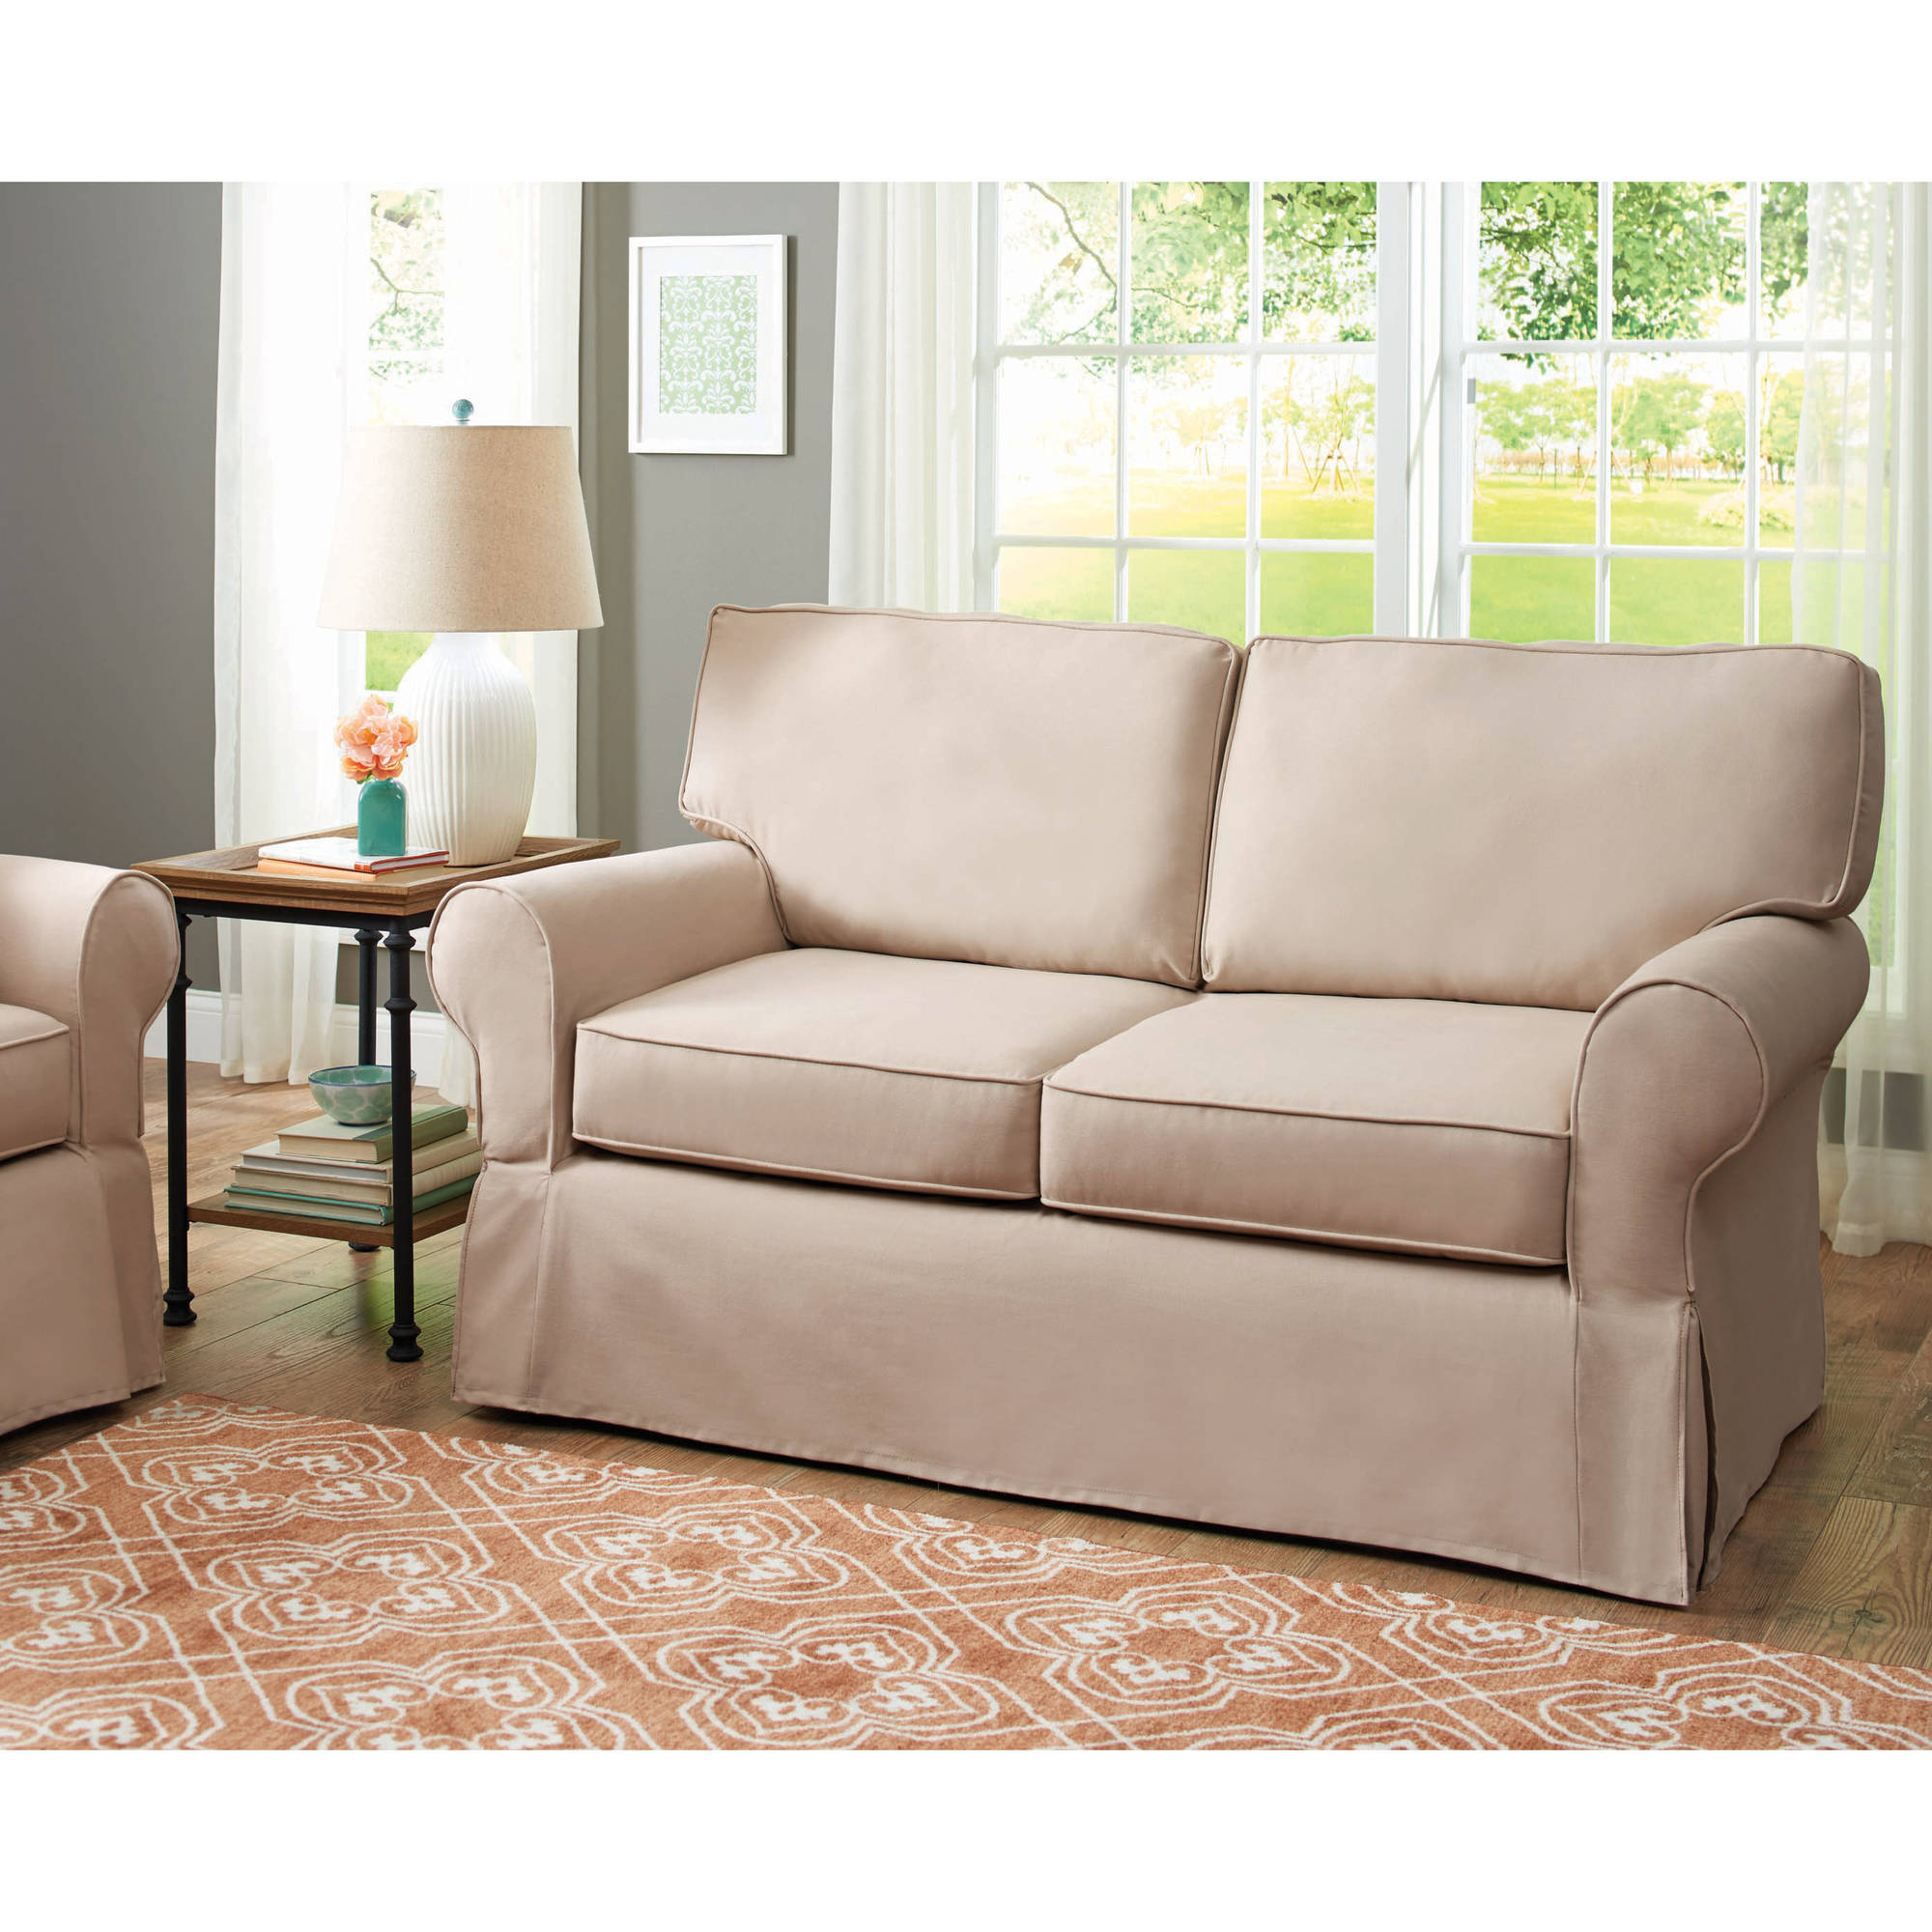 Better Homes and Gardens Slip Cover Pala Loveseat, Multiple Colors